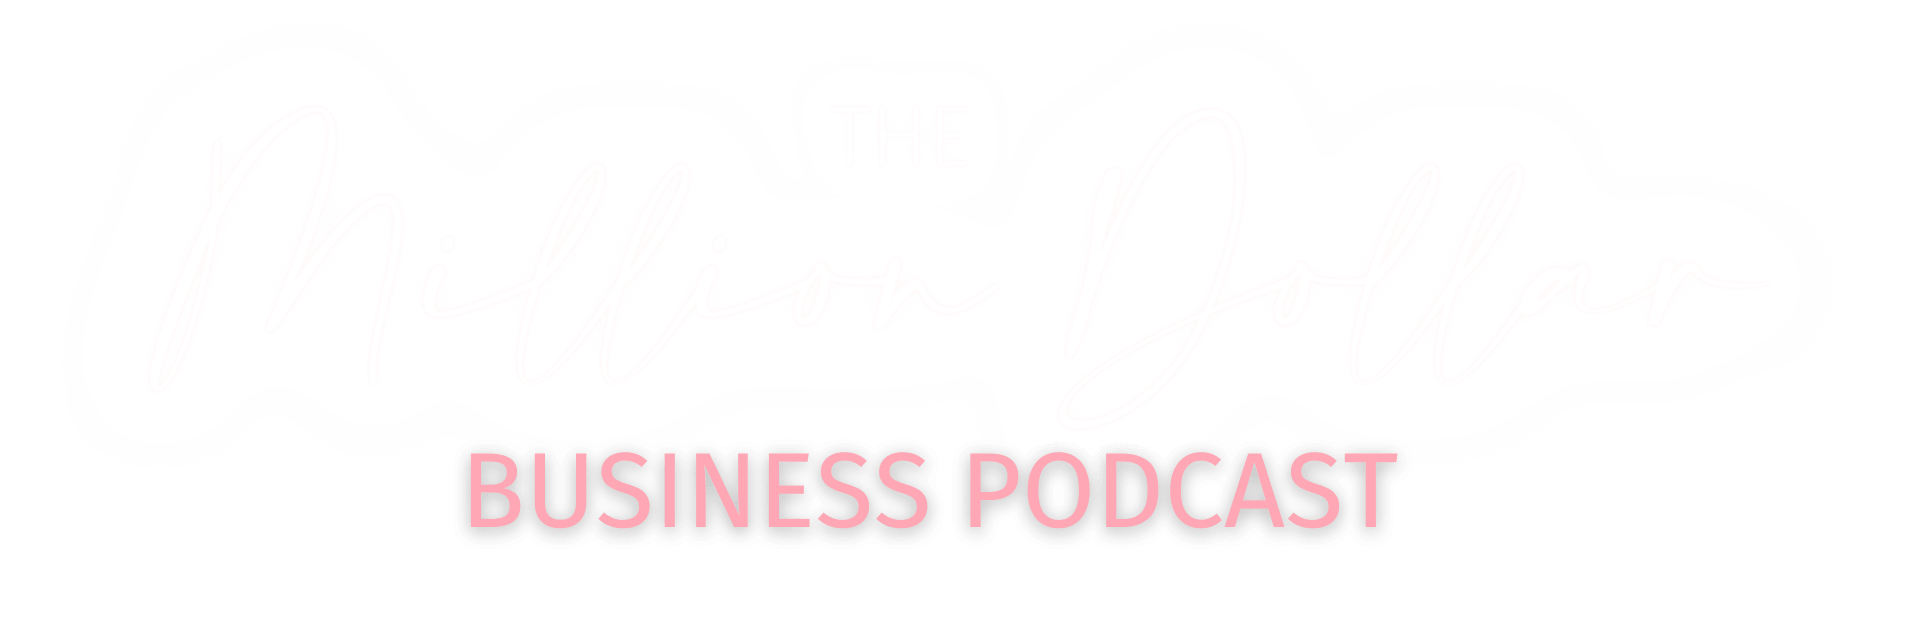 Meant For Millions Podcast for Entrepreneurs who want strategy, mindset and a healthy dose of tough love